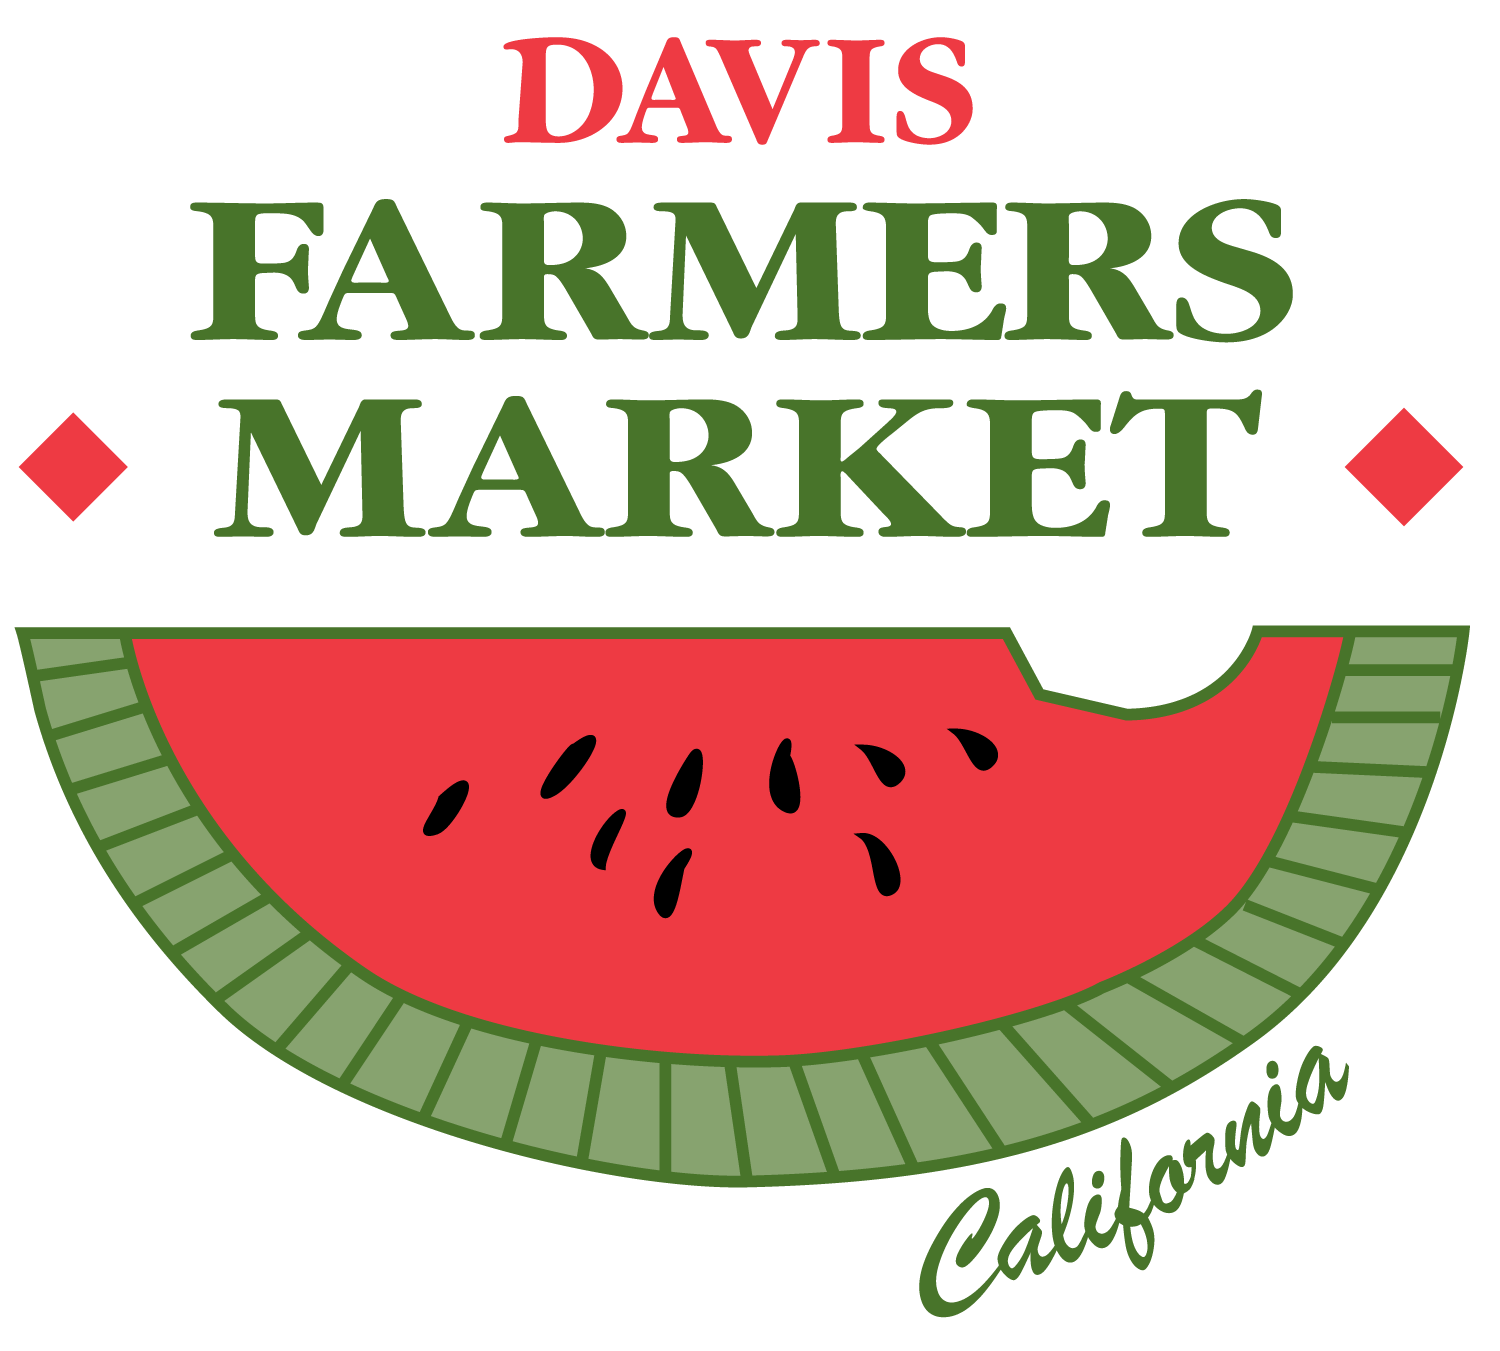 Davis Farmers Market: Winter Market